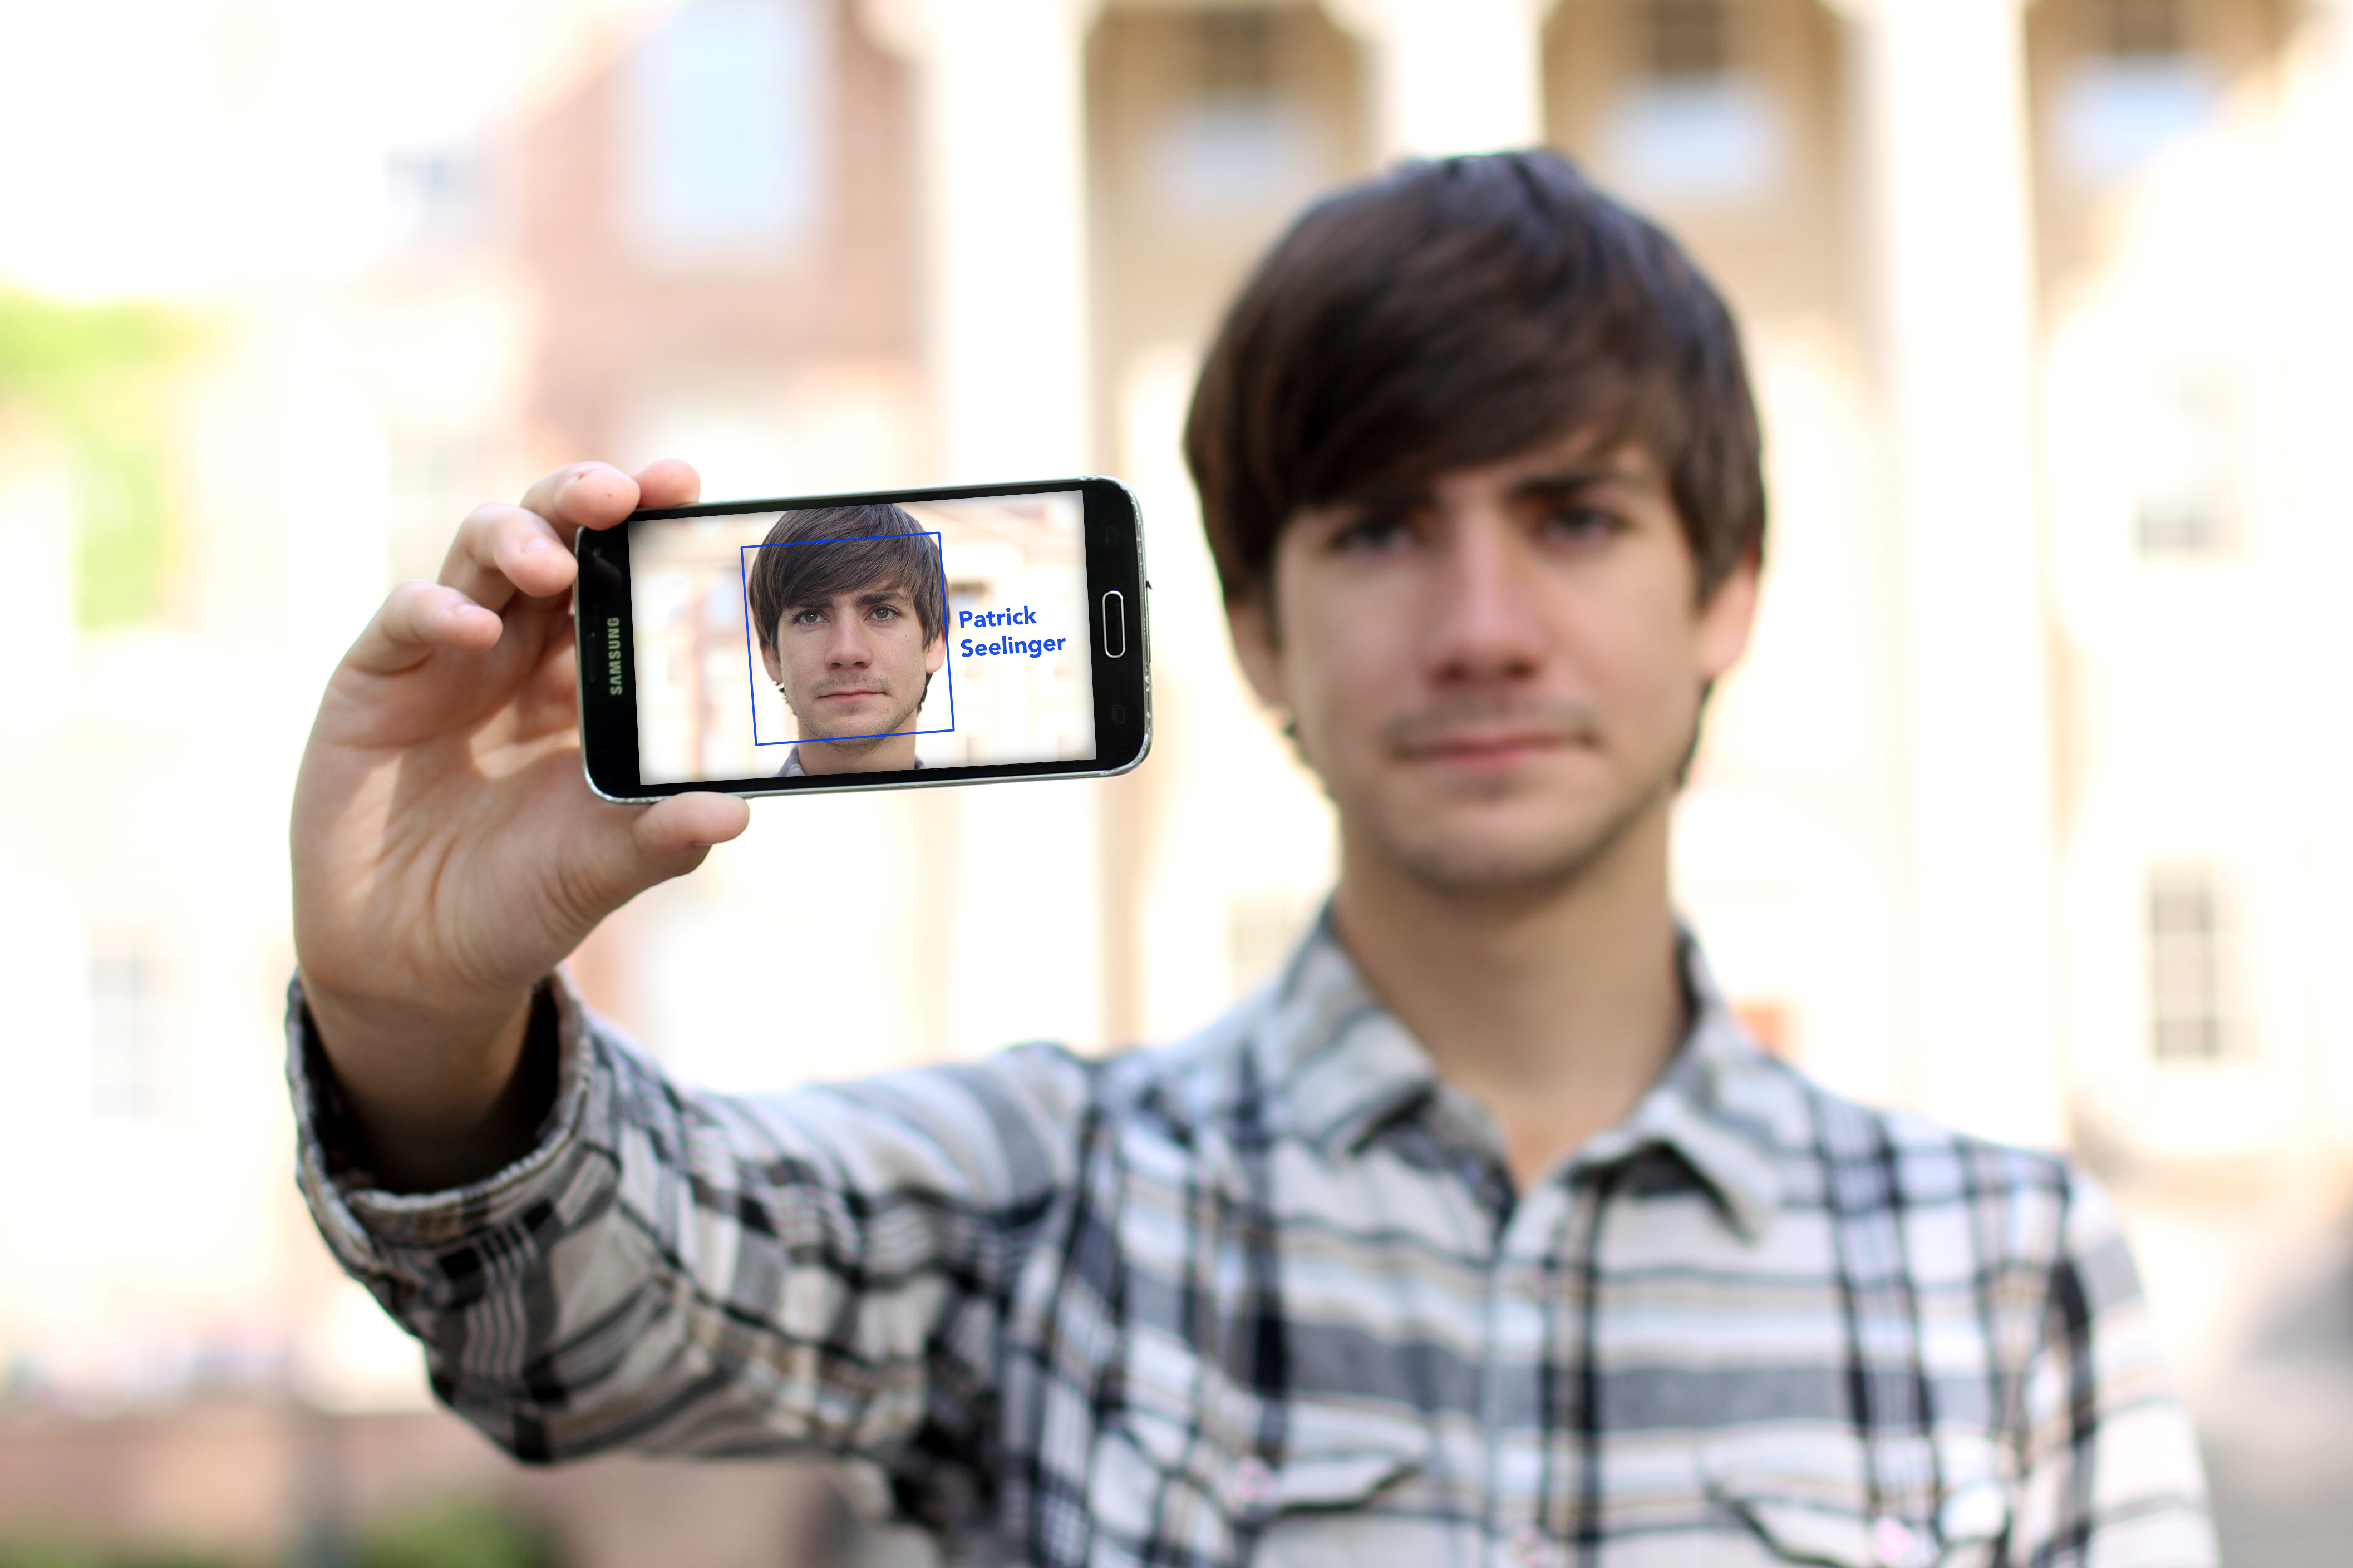 Patrick Seelinger holds up his phone, which shows a depiction of the projected interface for the facial recognition app he's developing. Users will be able to point their phones at a person's face and then tap on the square surrounding it to acquire additional information about that person.